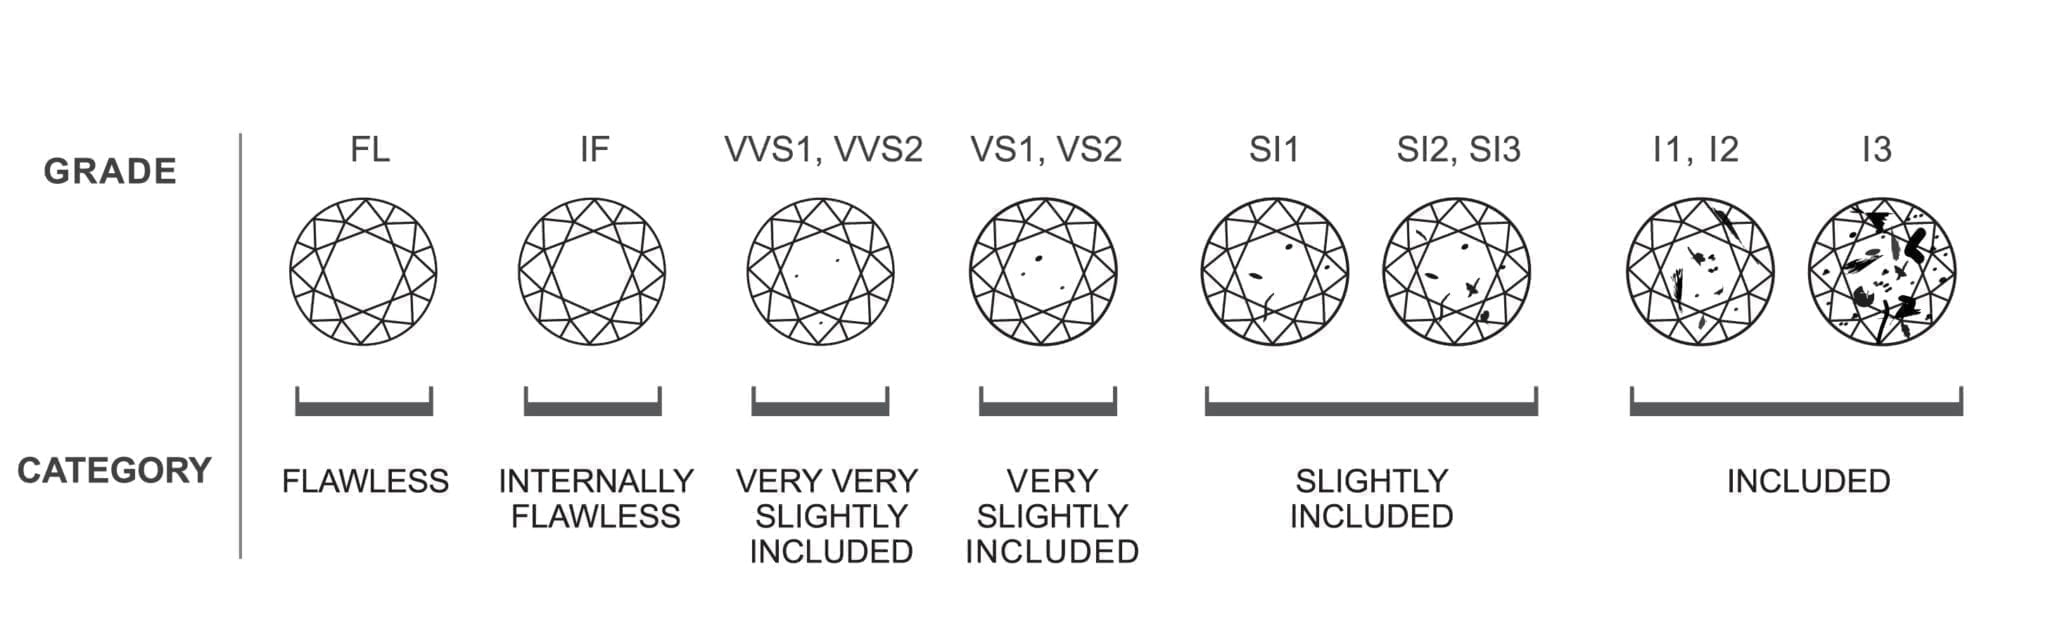 youtube rings to grading how diamond watch clarity understand